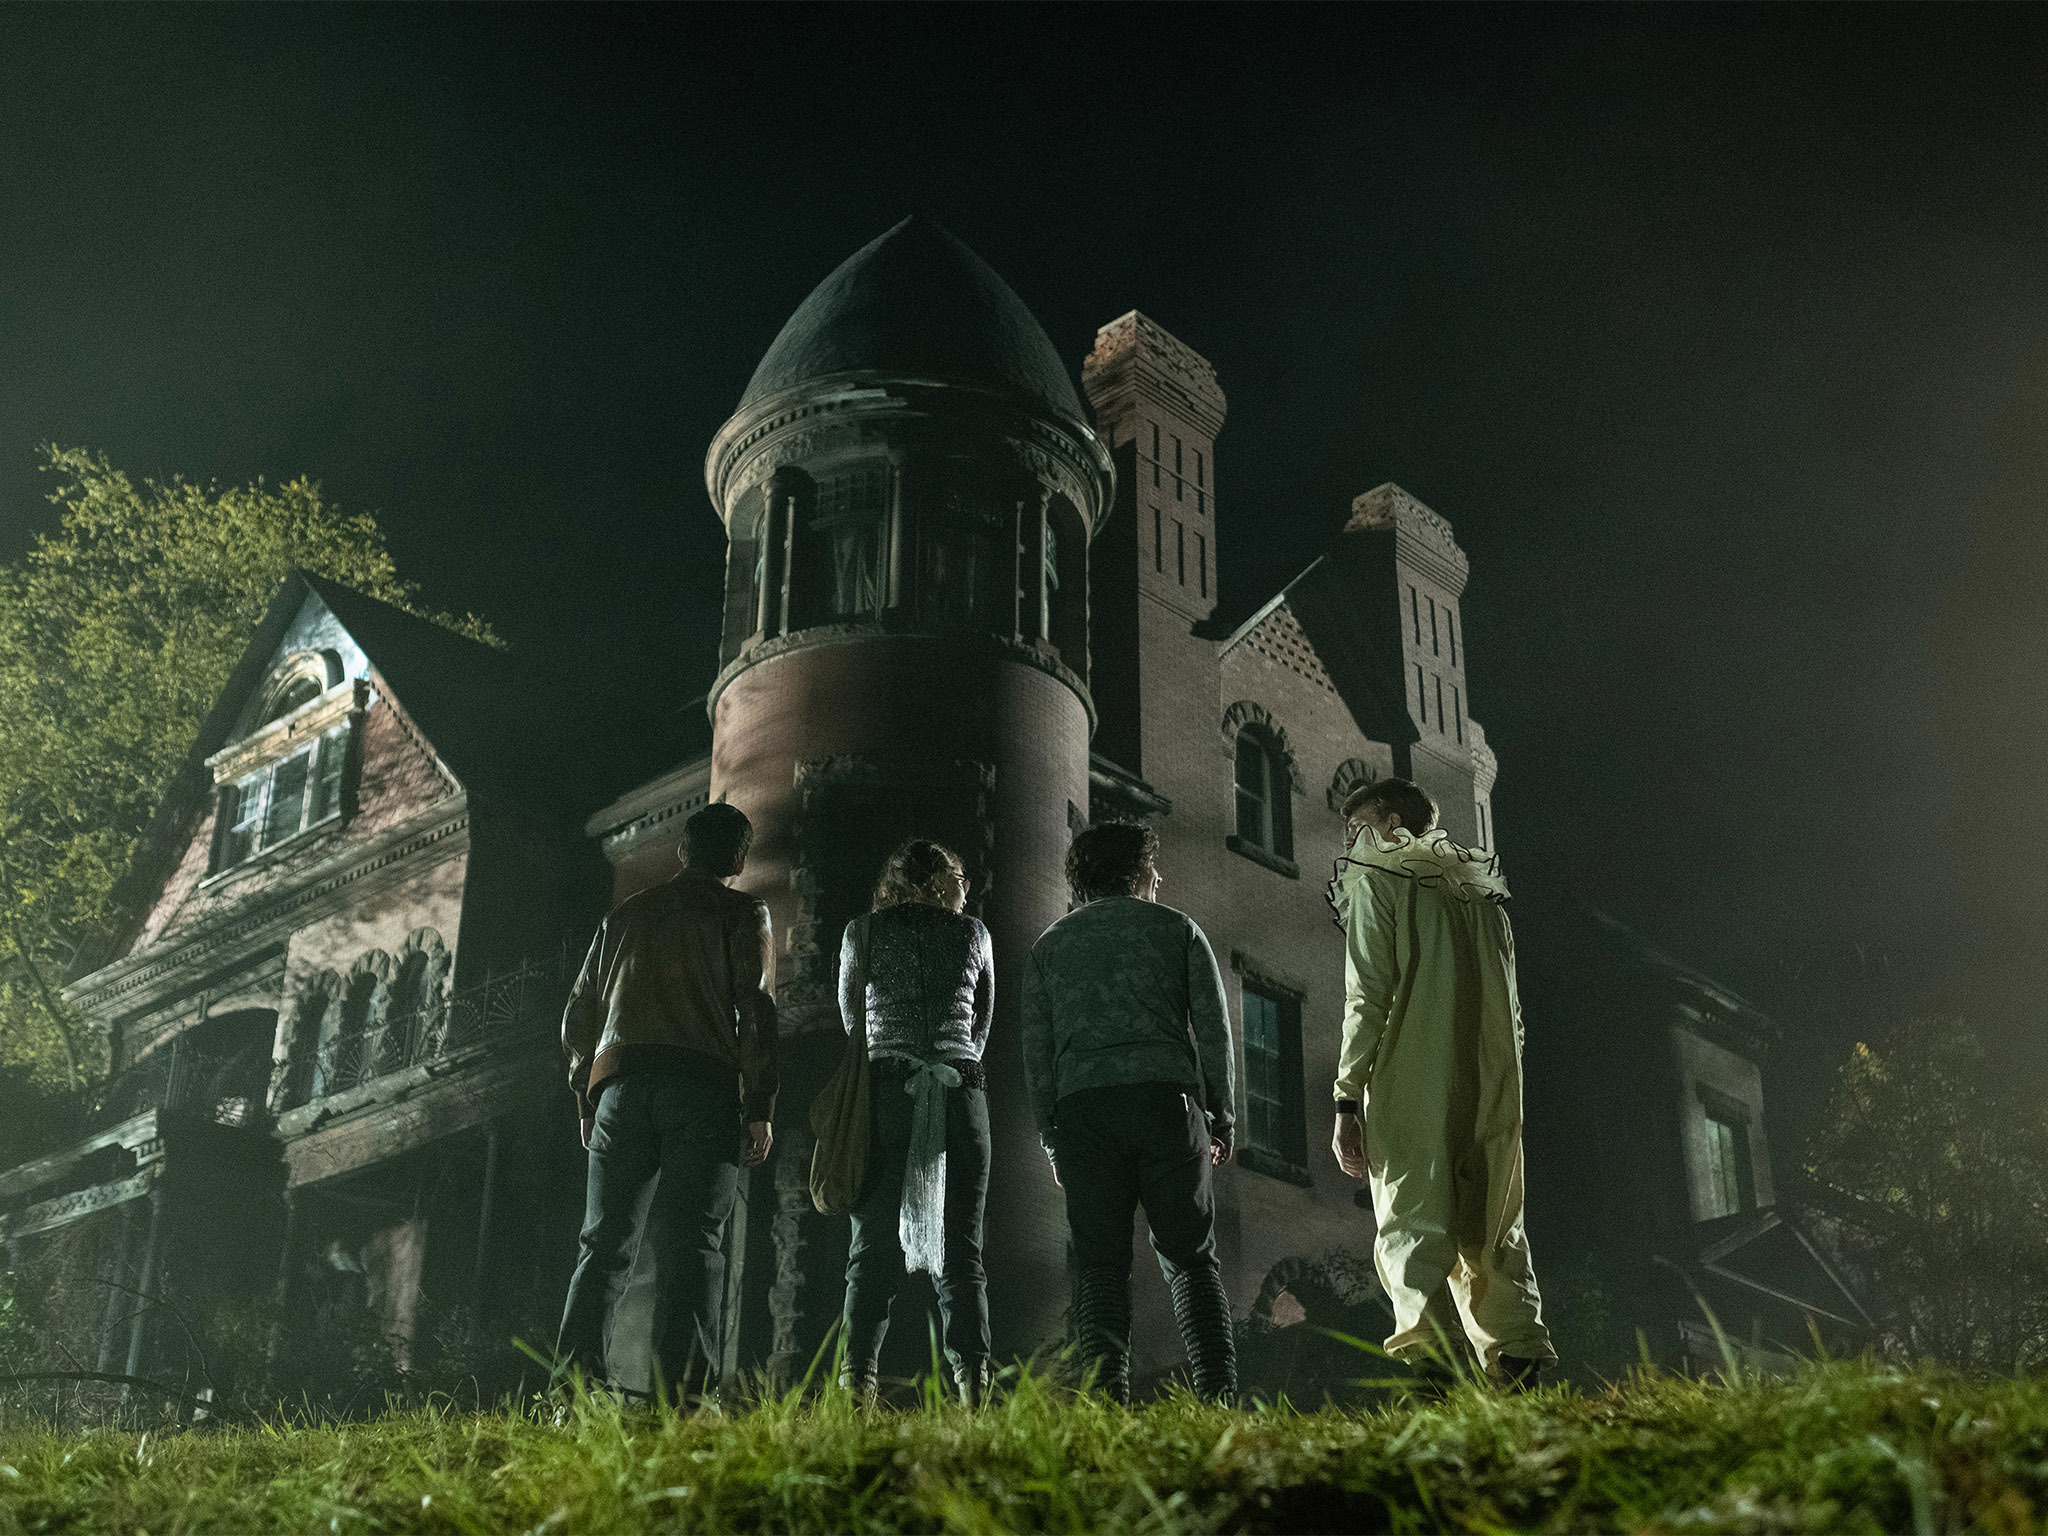 21 Best Scary Movies For Kids That Make For A Spooky Night In 2,788 likes · 10 talking about this. 21 best scary movies for kids that make